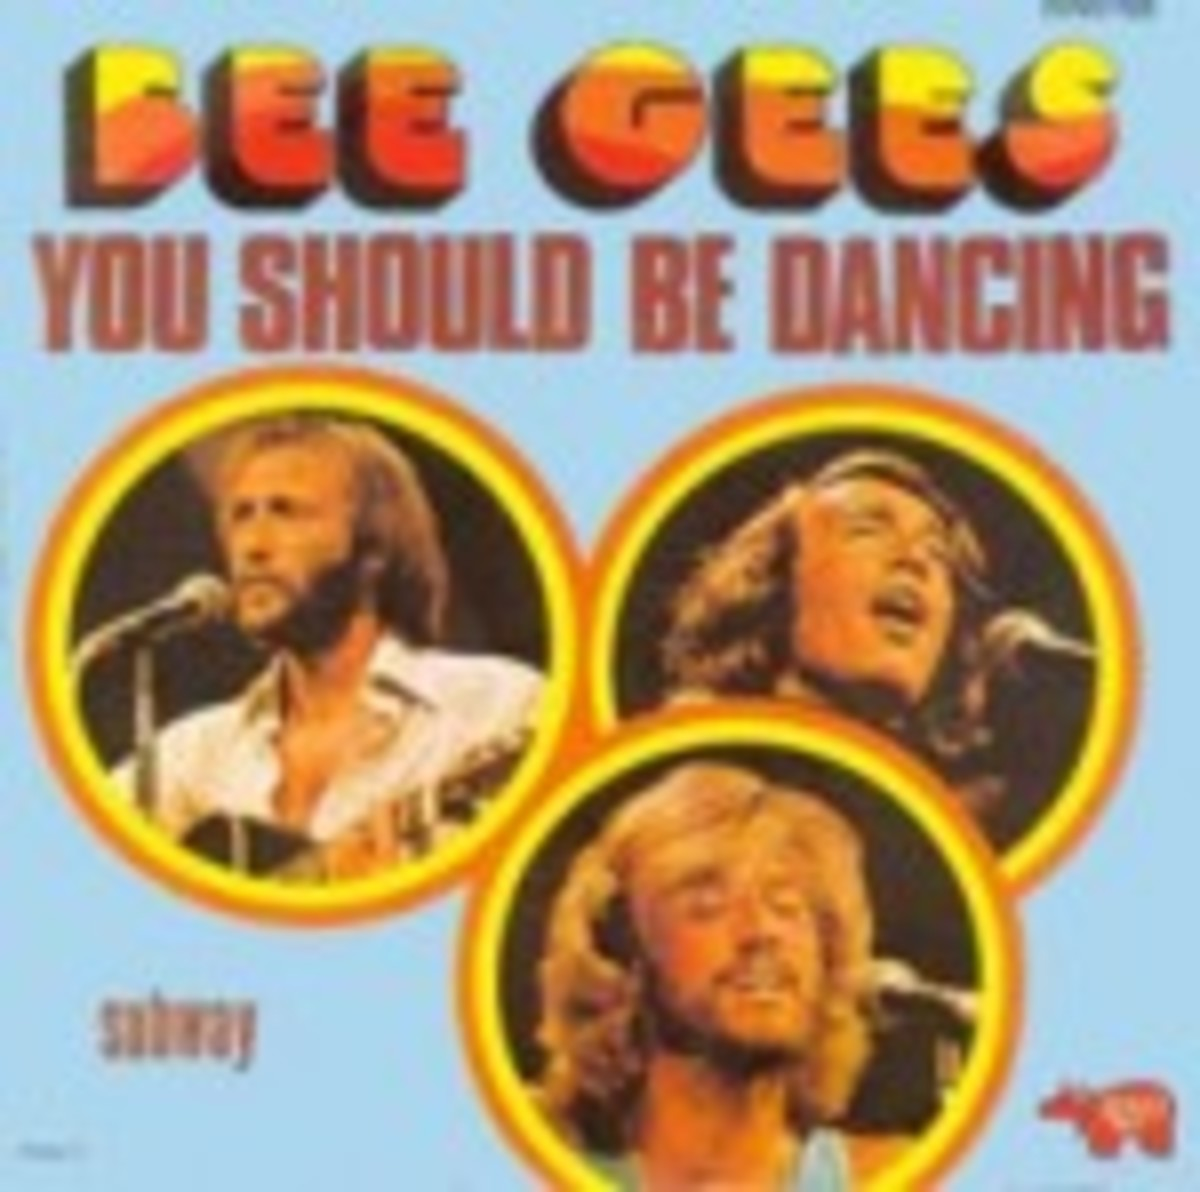 Bee Gees You Should Be Dancin'